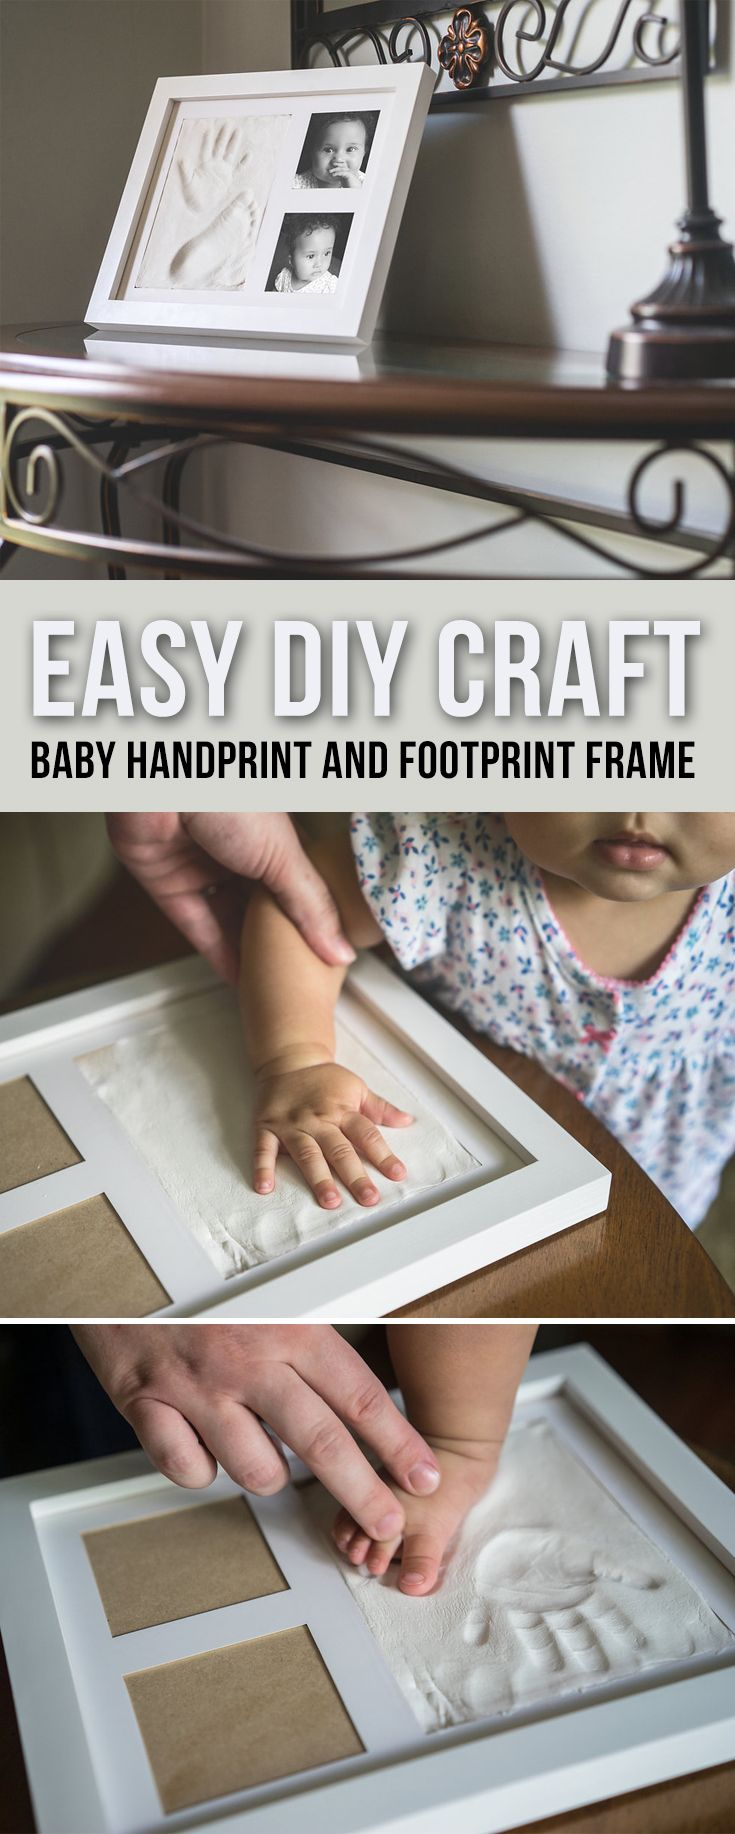 Our baby footprint kits and handprint kits are a fun DIY project for everyone…